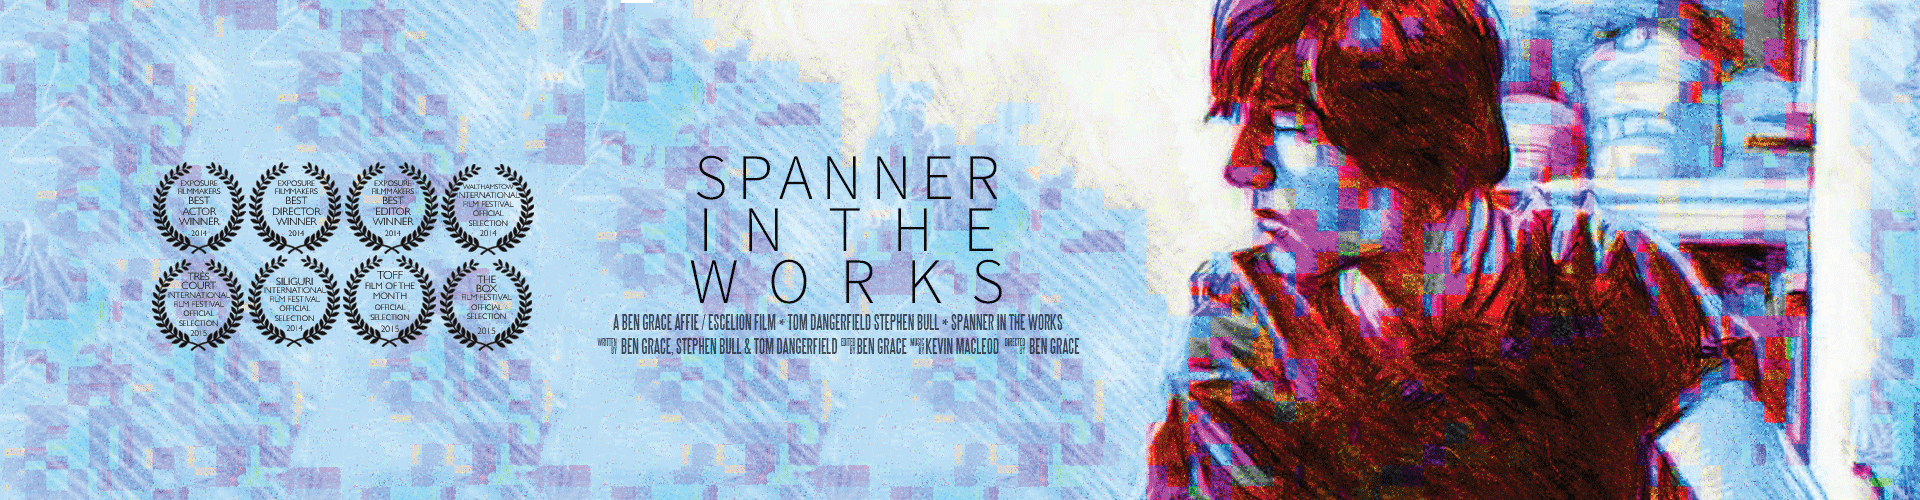 Spanner in the Works | Ben Grace Films | BenGrace.co.uk